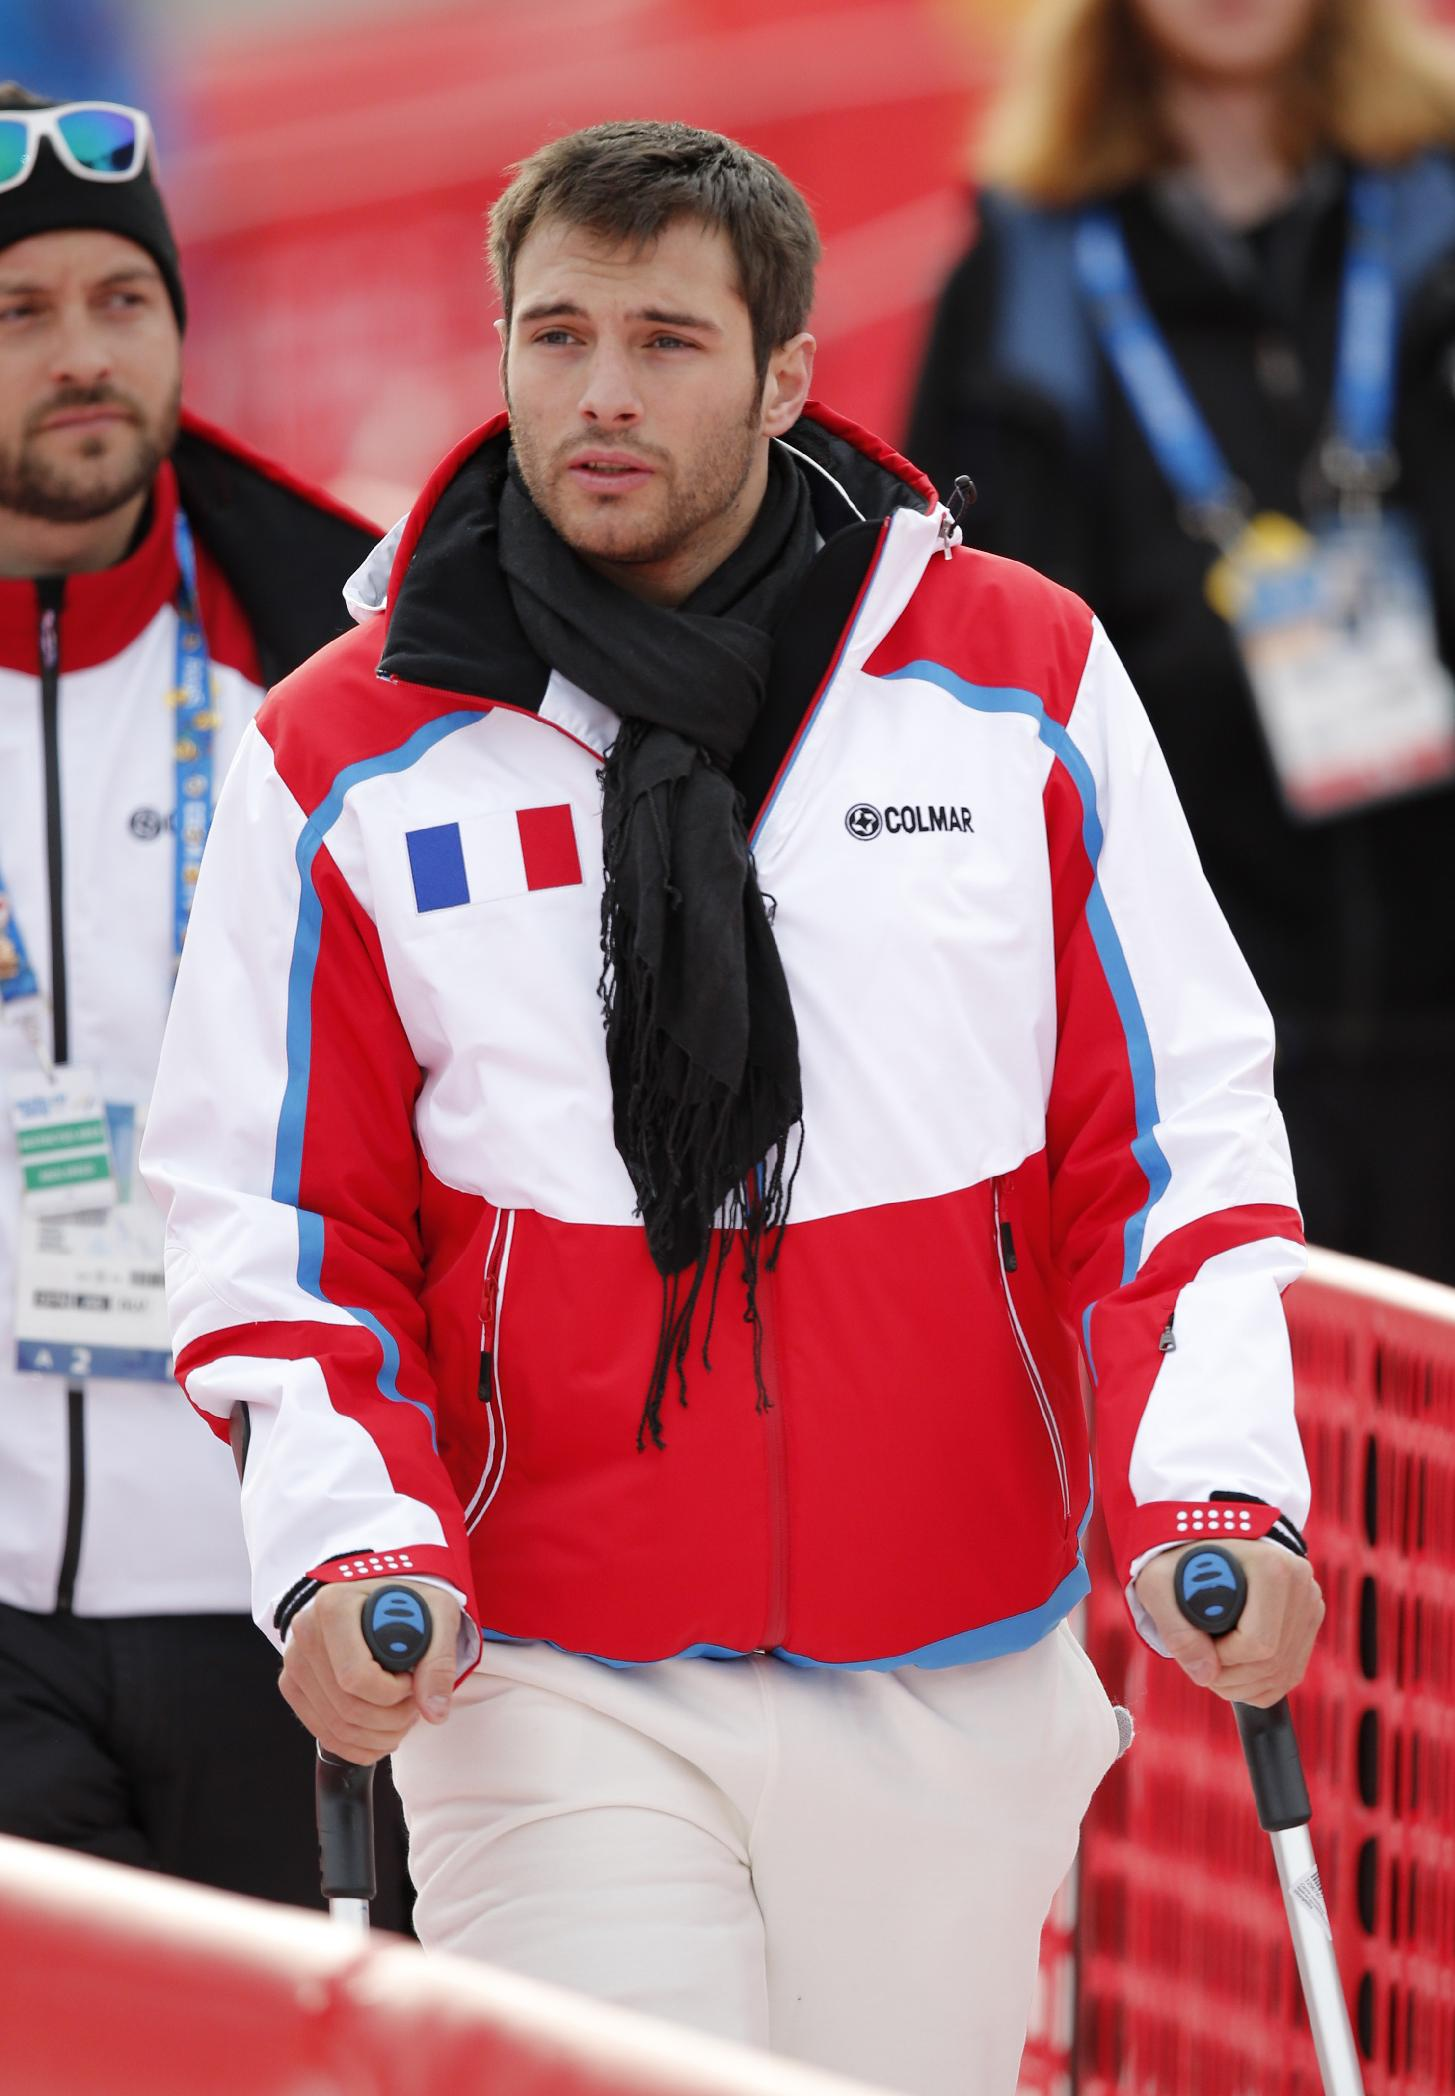 Brice Roger of France, who was injured during training, arrives in the finish area of the Alpine ski venue before the men's downhill at the Sochi 2014 Winter Olympics, Sunday, Feb. 9, 2014, in Krasnaya Polyana, Russia